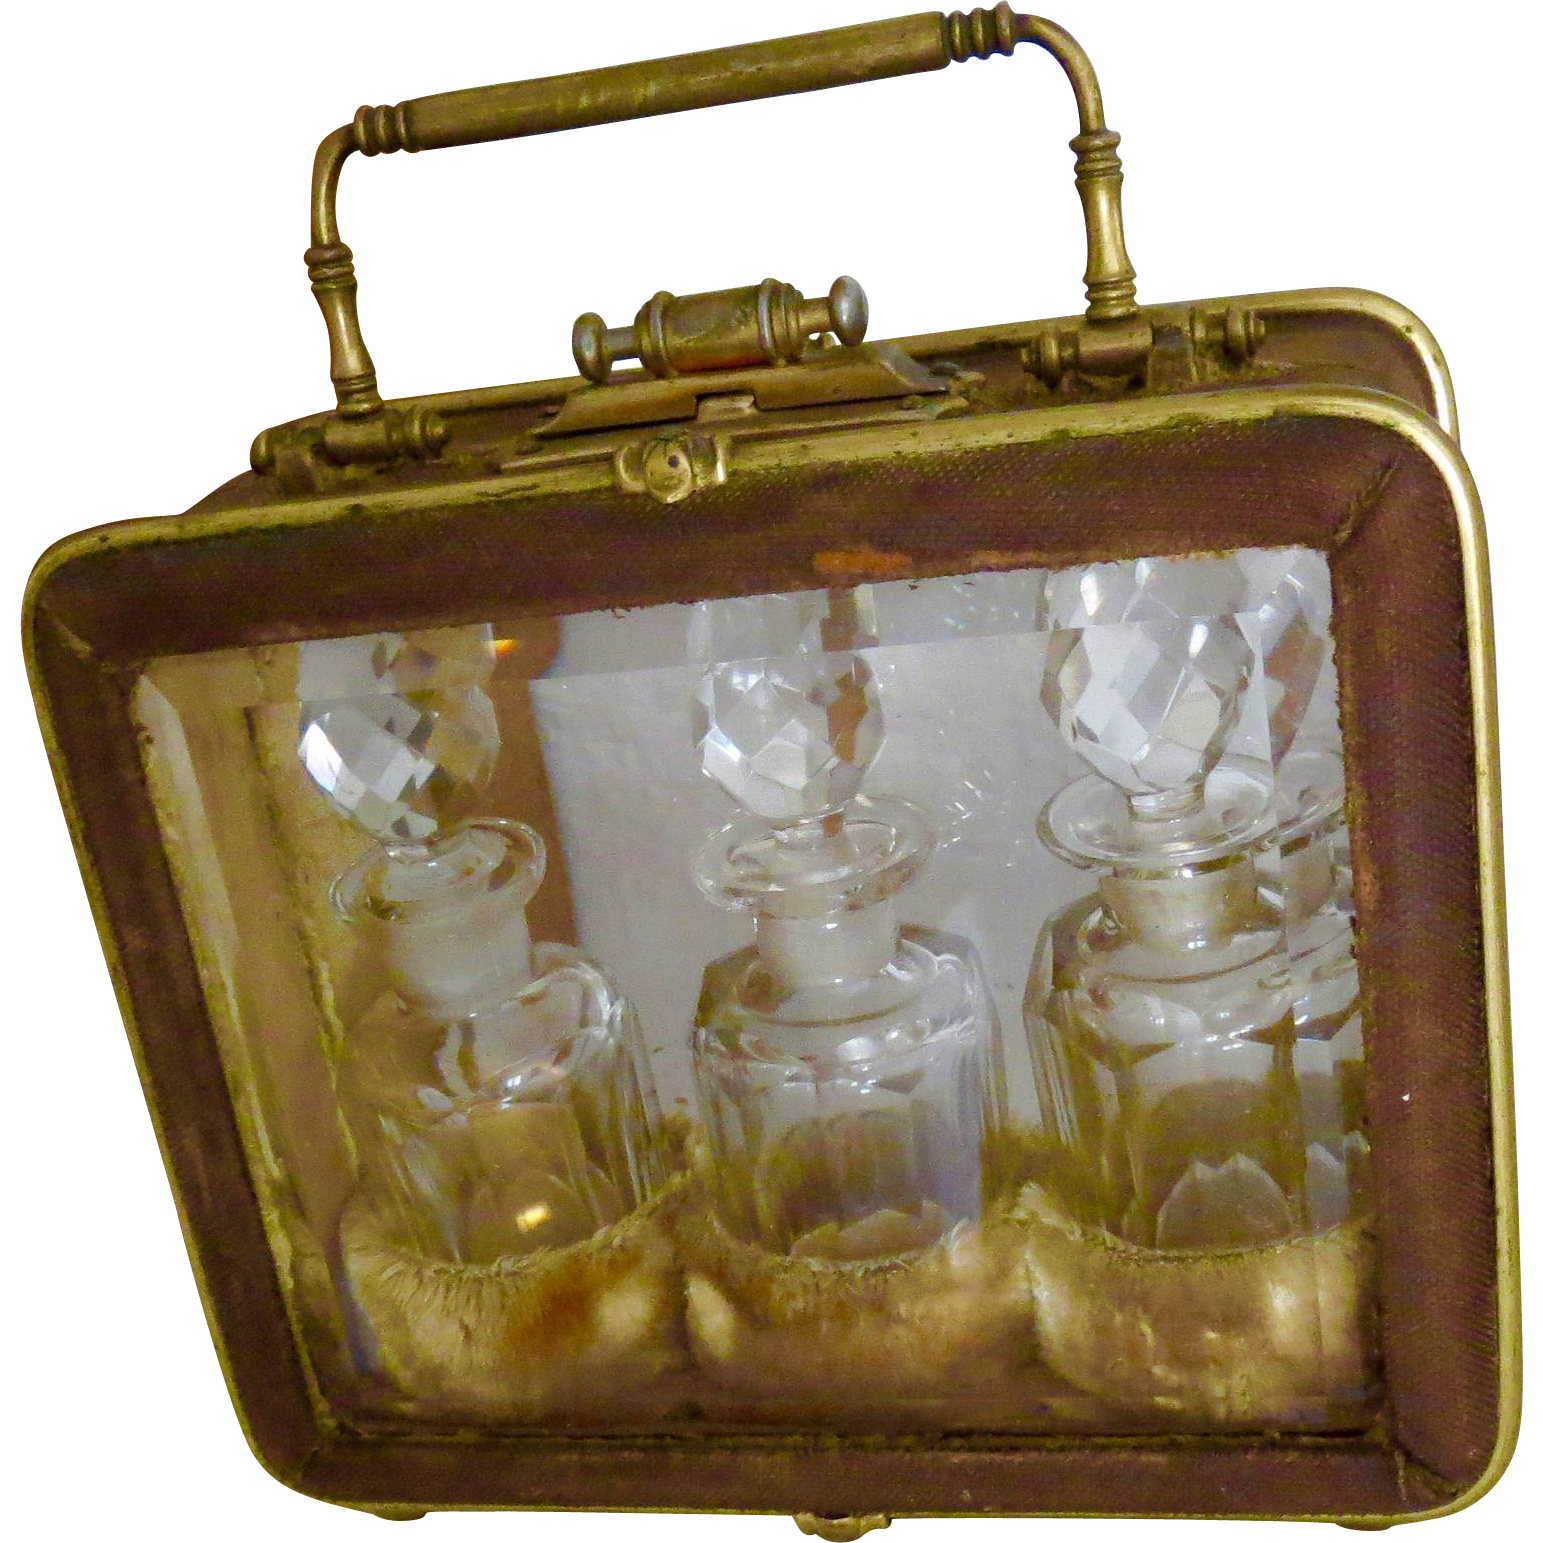 Rare Antique Perfume Casket with 3 Hand-cut Crystal Perfume Bottles